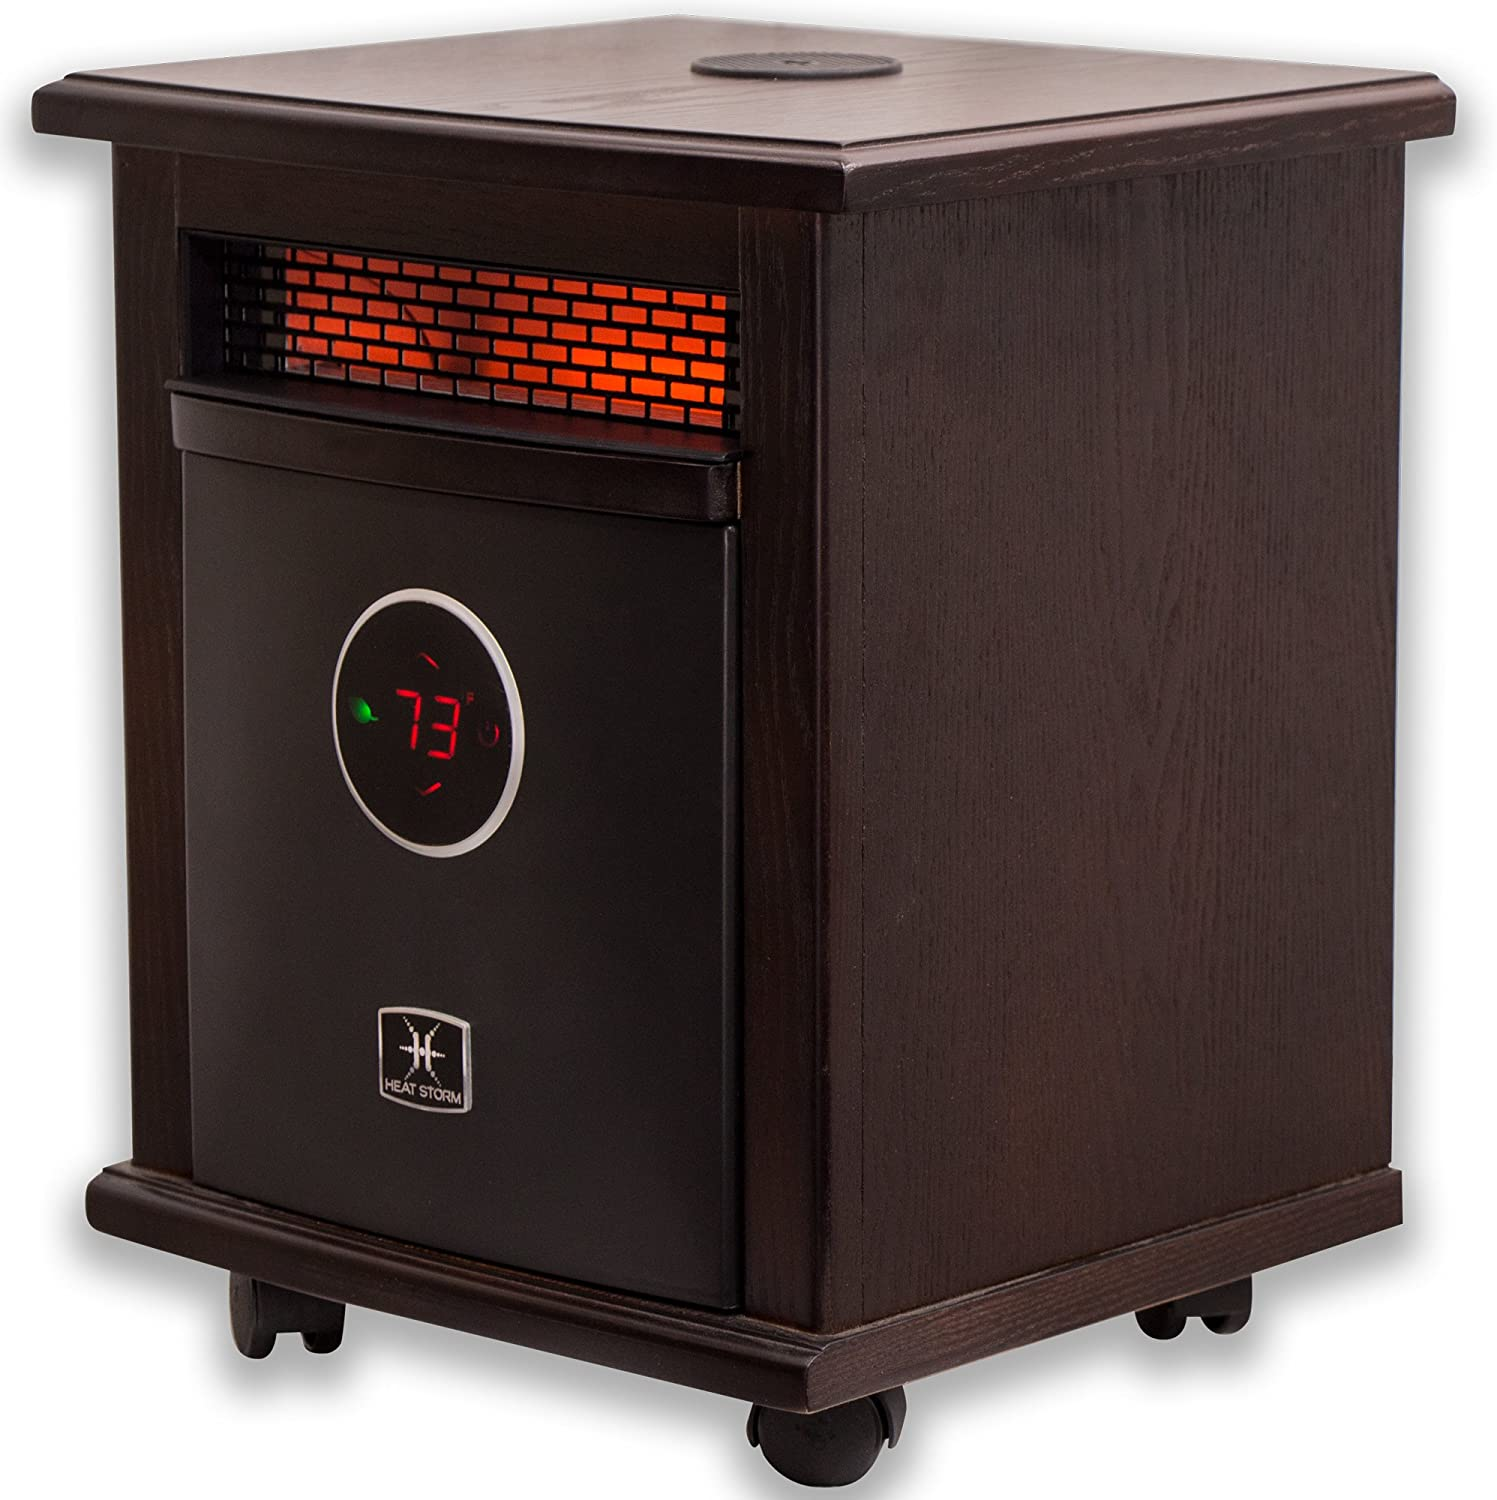 Heat Storm Deluxe Logan w/Bluetooth Speaker Portable Infrared Space Heater